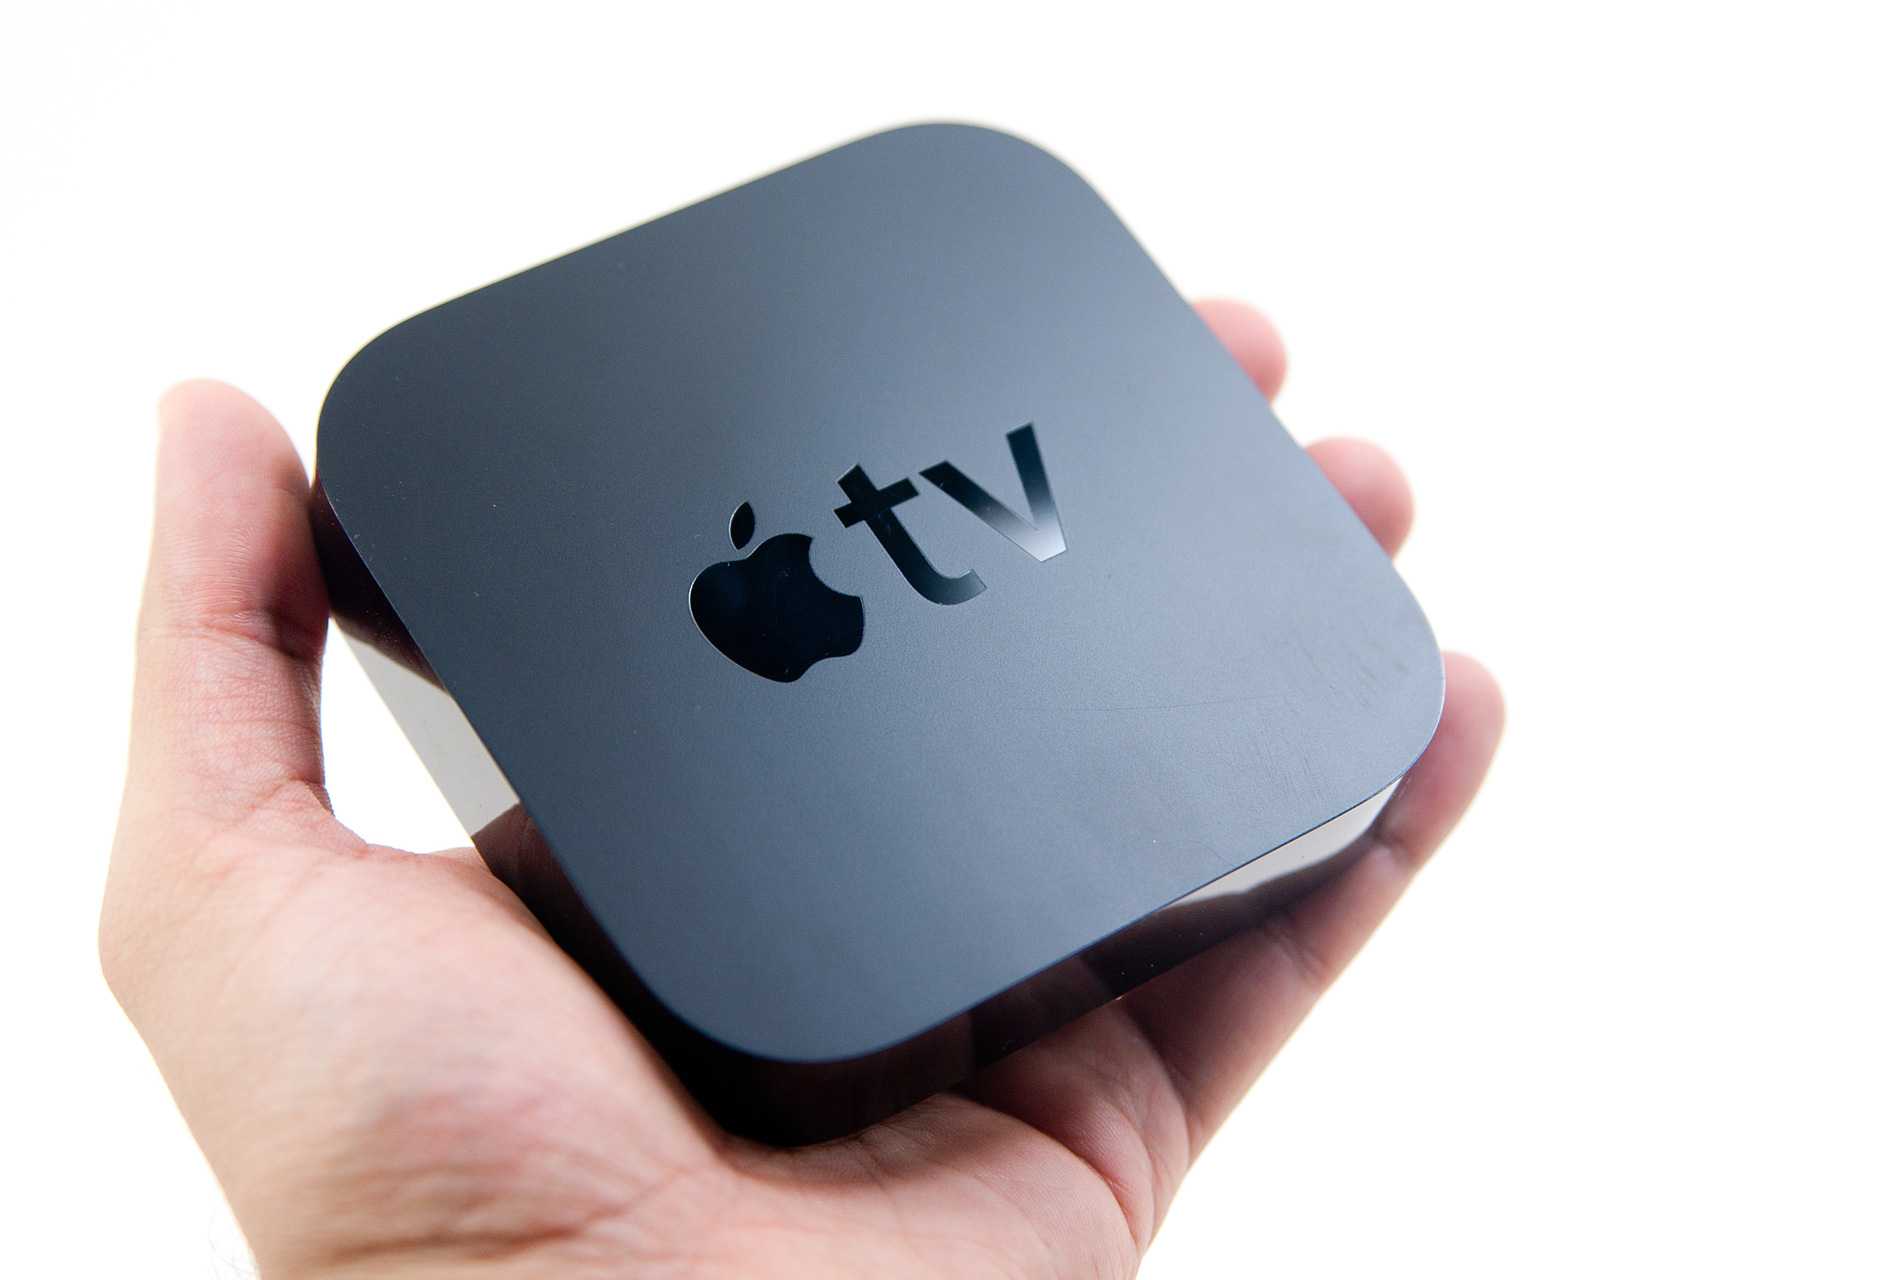 https://i1.wp.com/images.anandtech.com/reviews/gadgets/apple/AppleTV2/_DSC2624.jpg